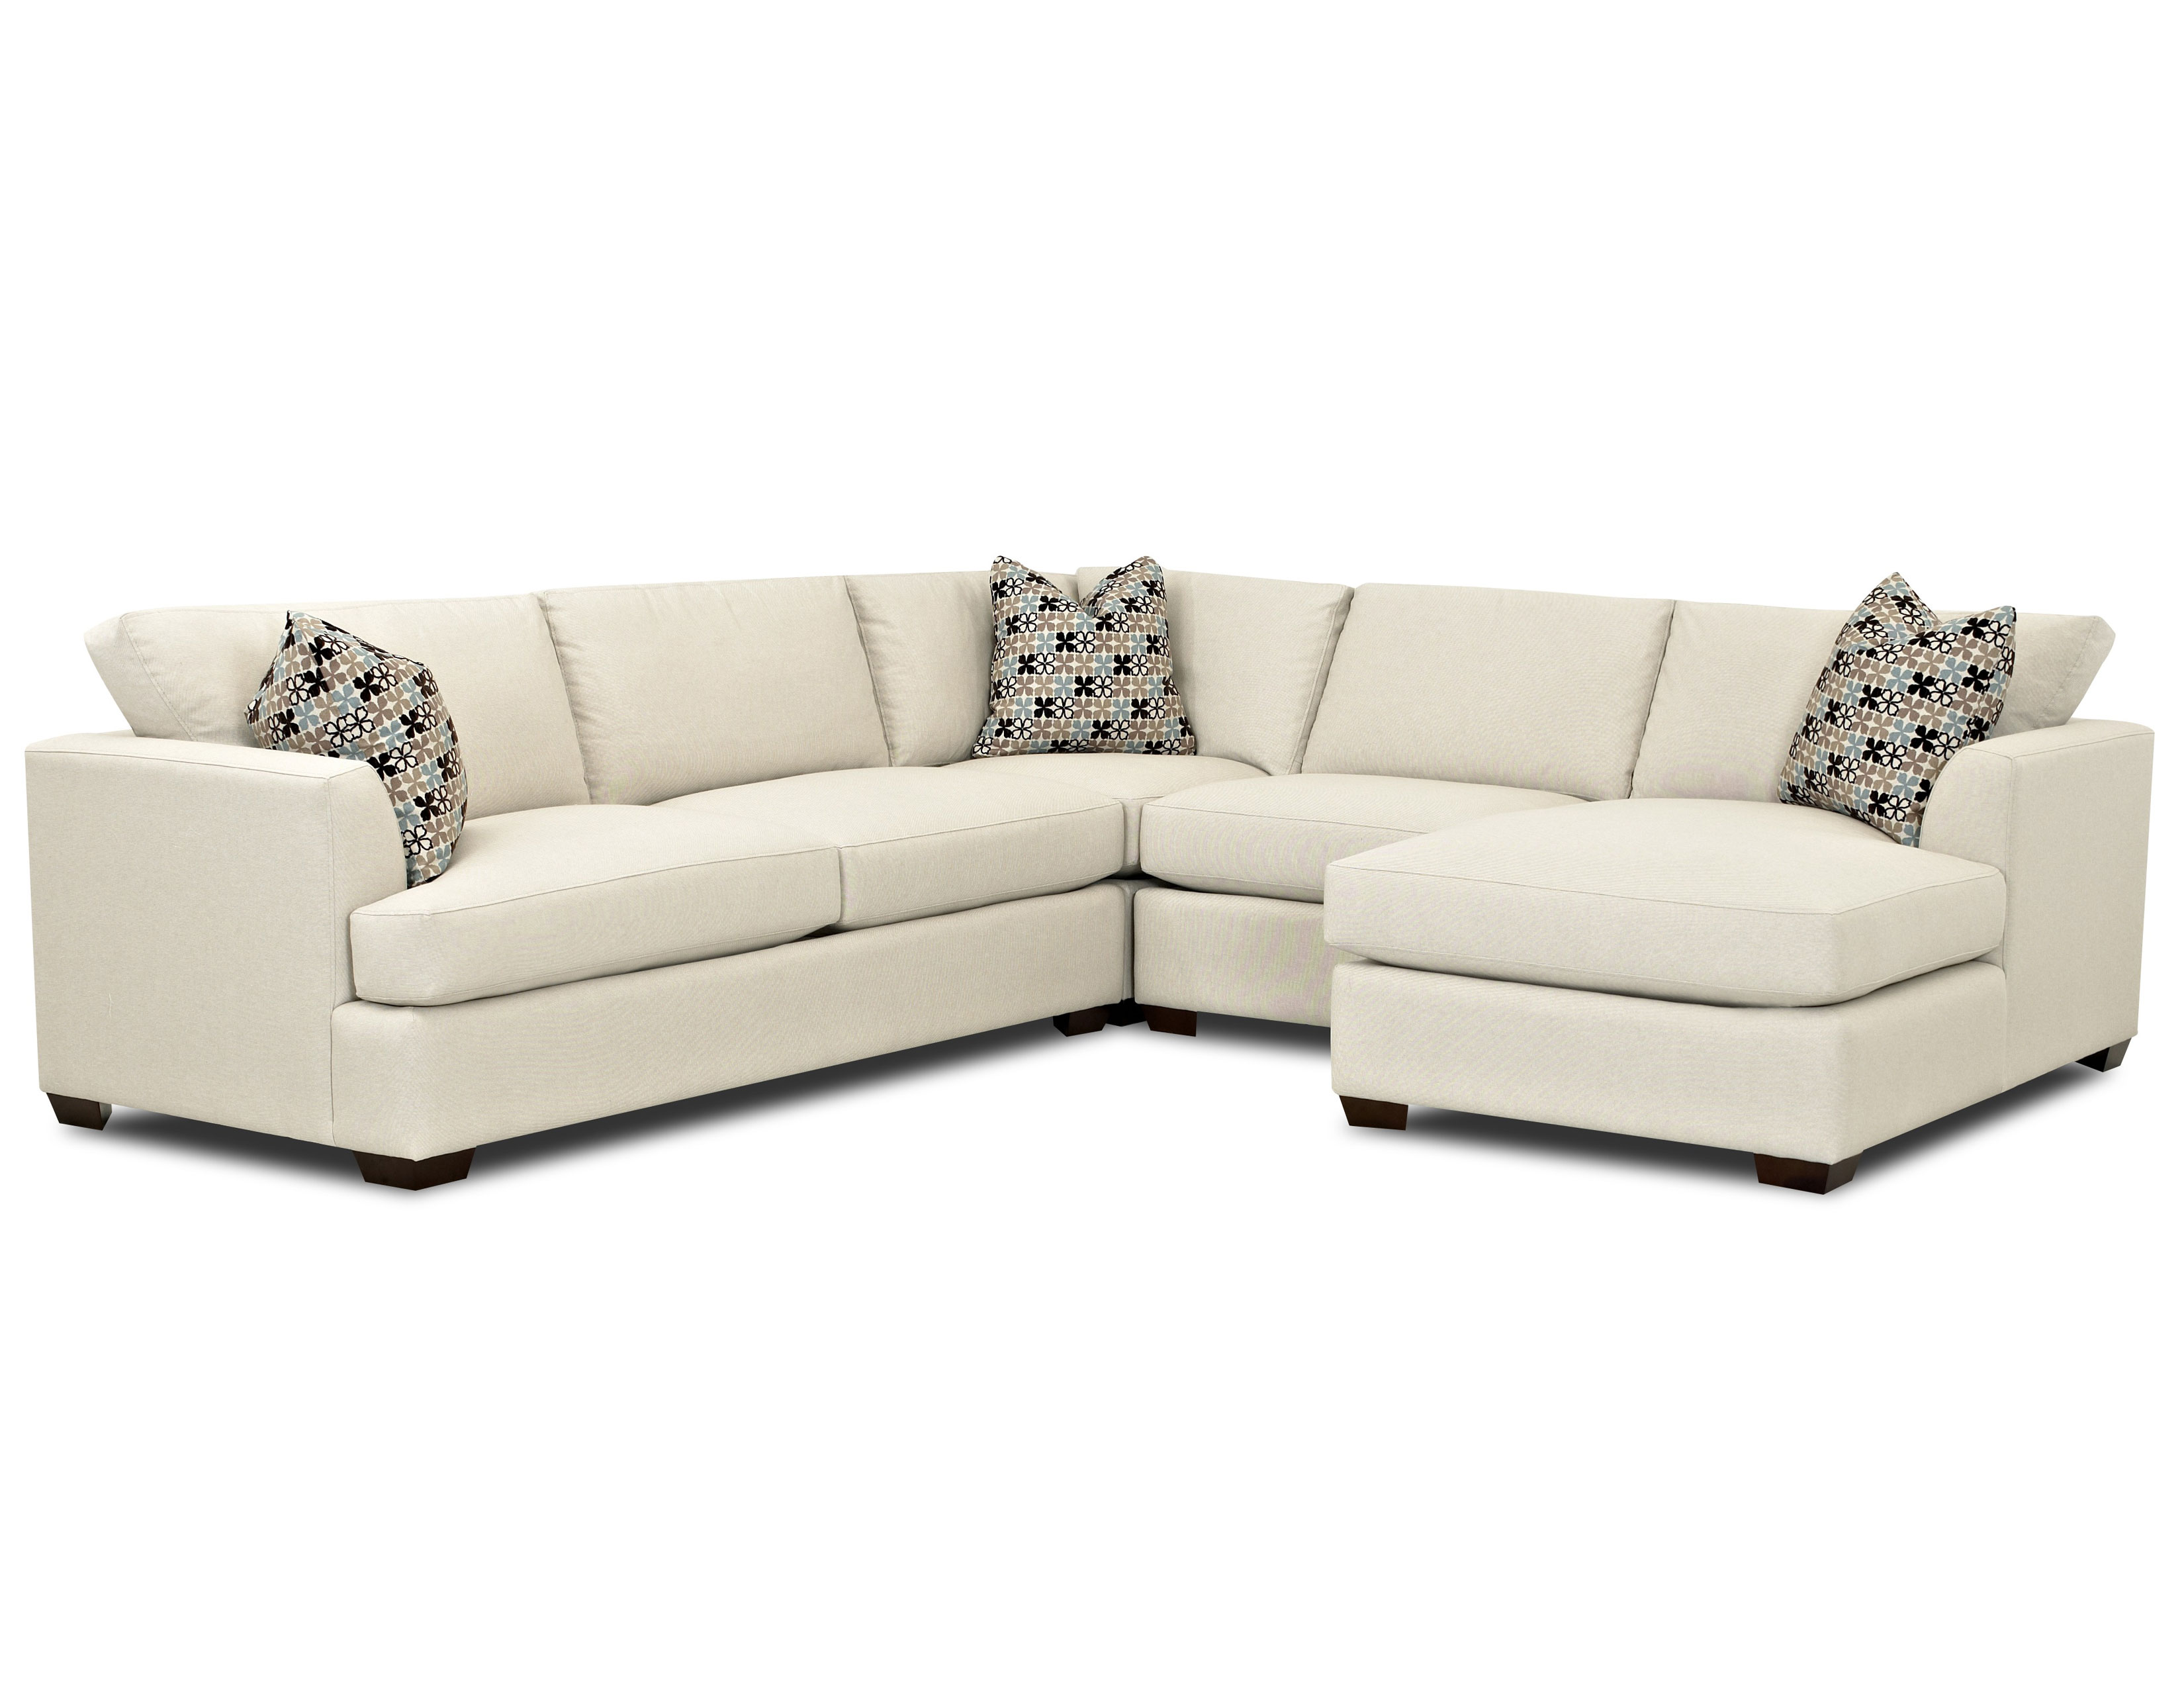 Bentley D92200 Sectional Hundreds Of Fabrics Sofas And